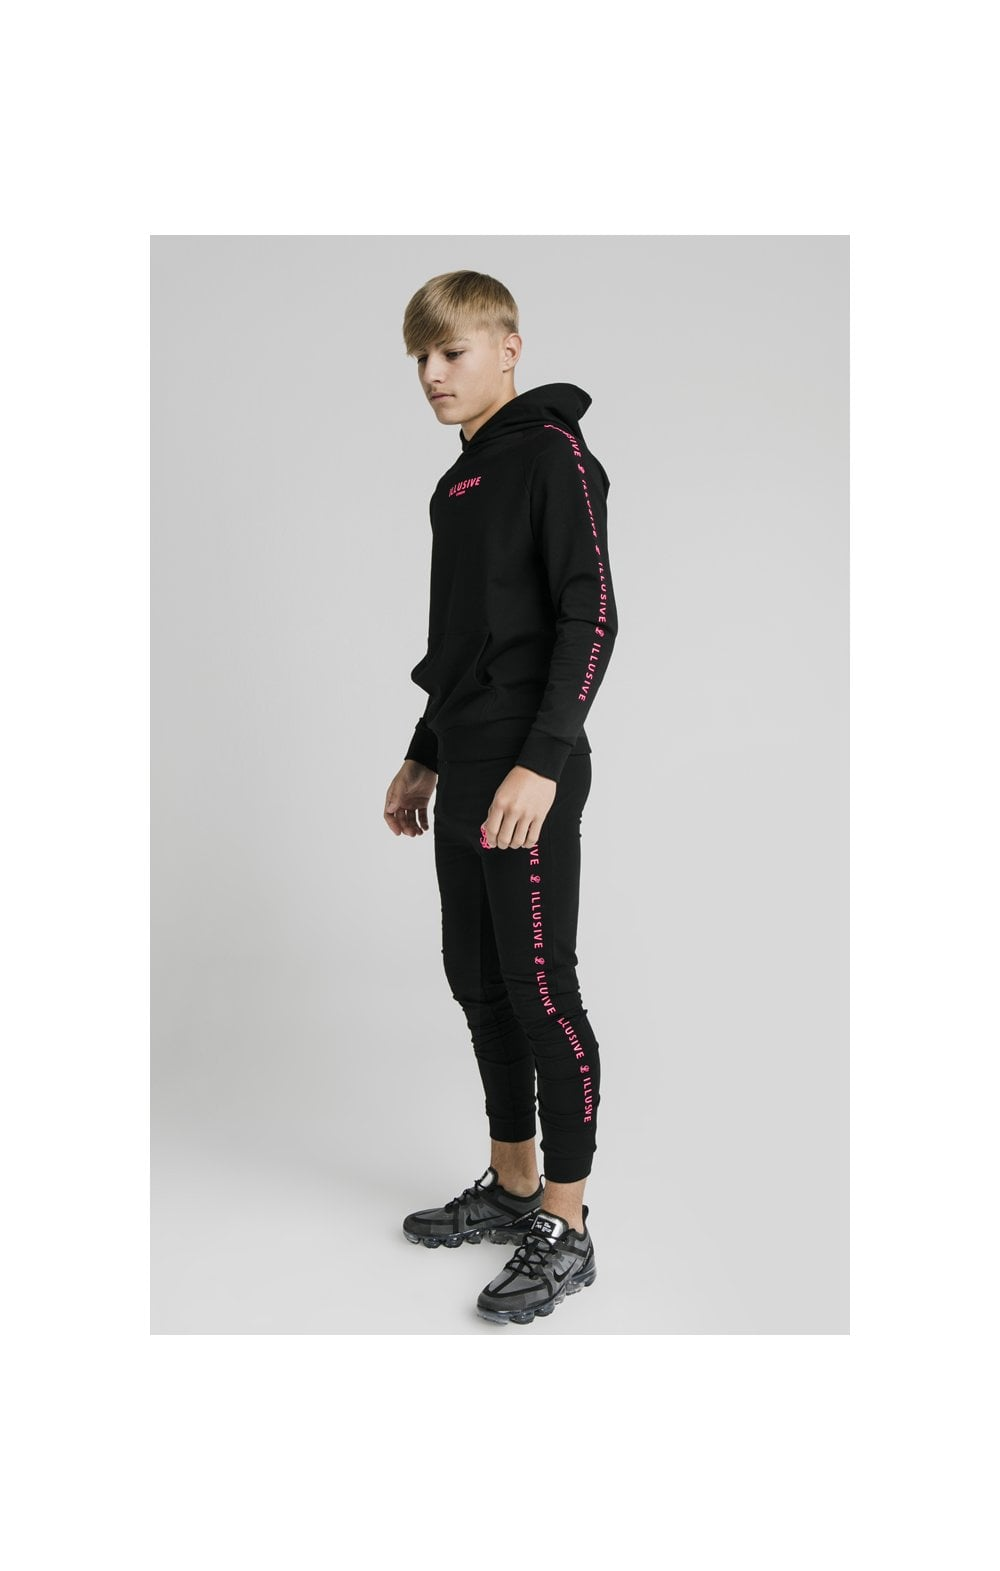 Illusive London Cuffed Joggers – Black & Pink (3)